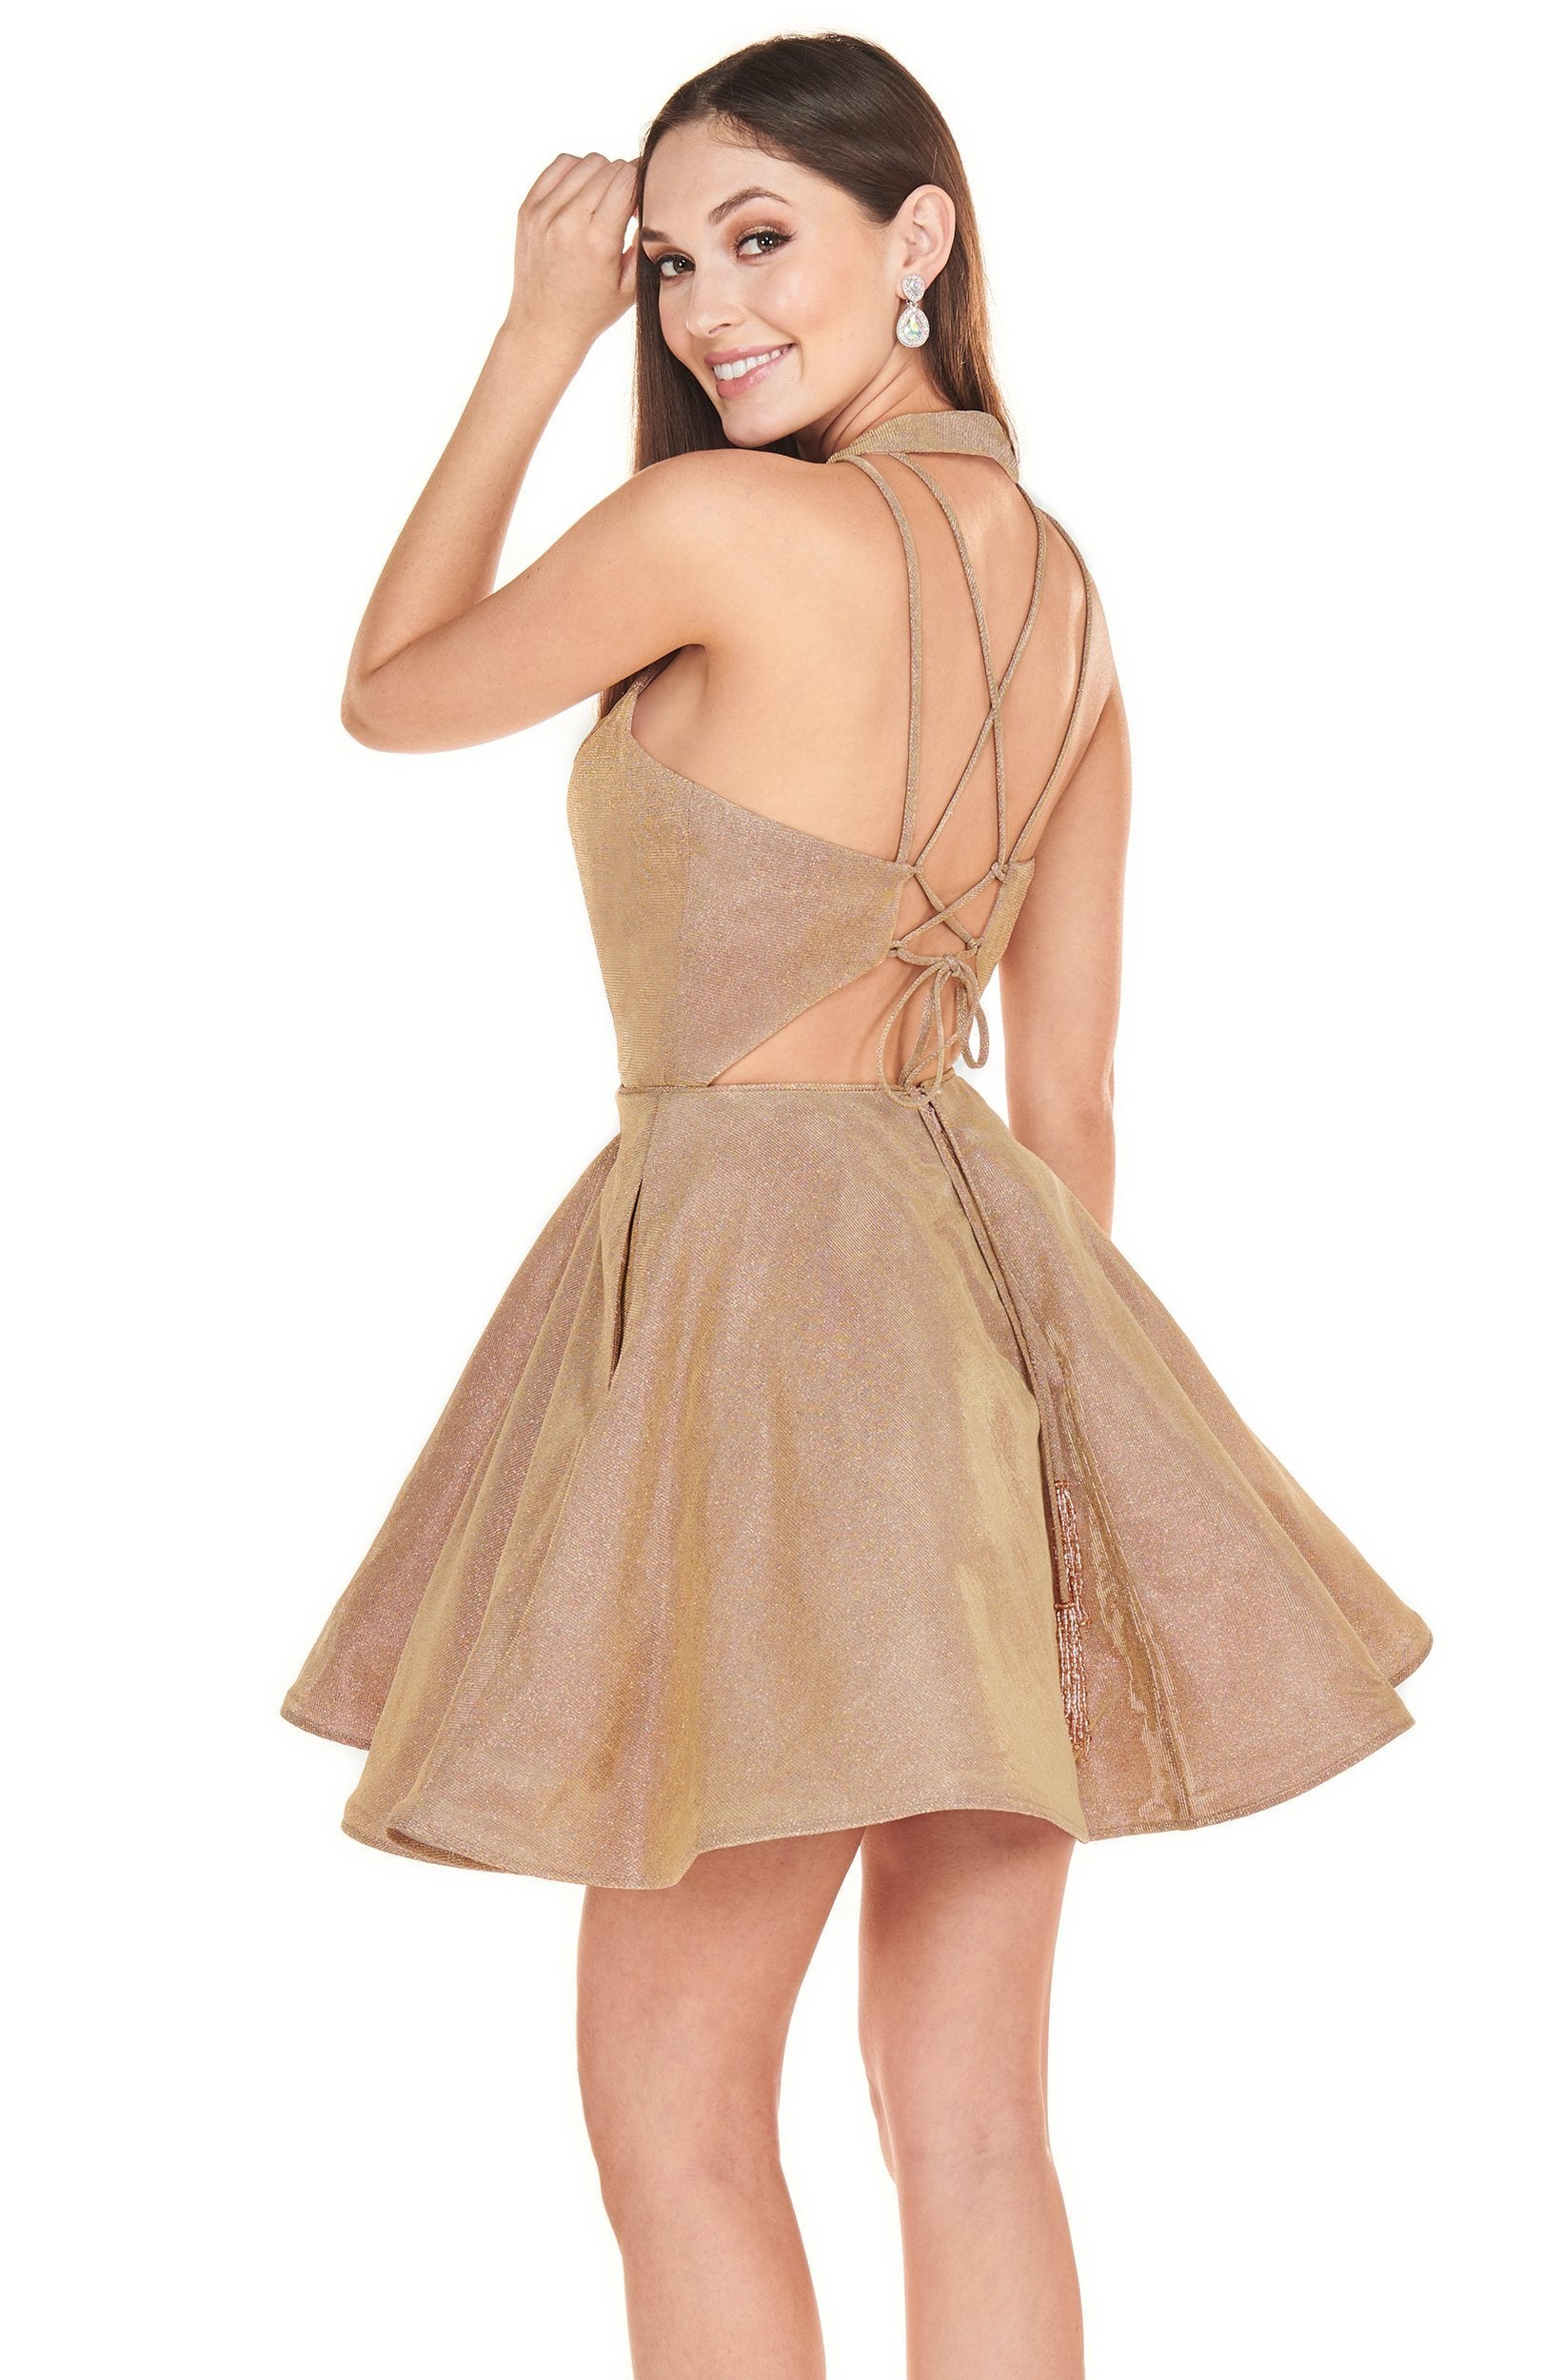 Rachel Allan Shorts - 4102 Halter Shimmer A-Line Mini Dress In Gold